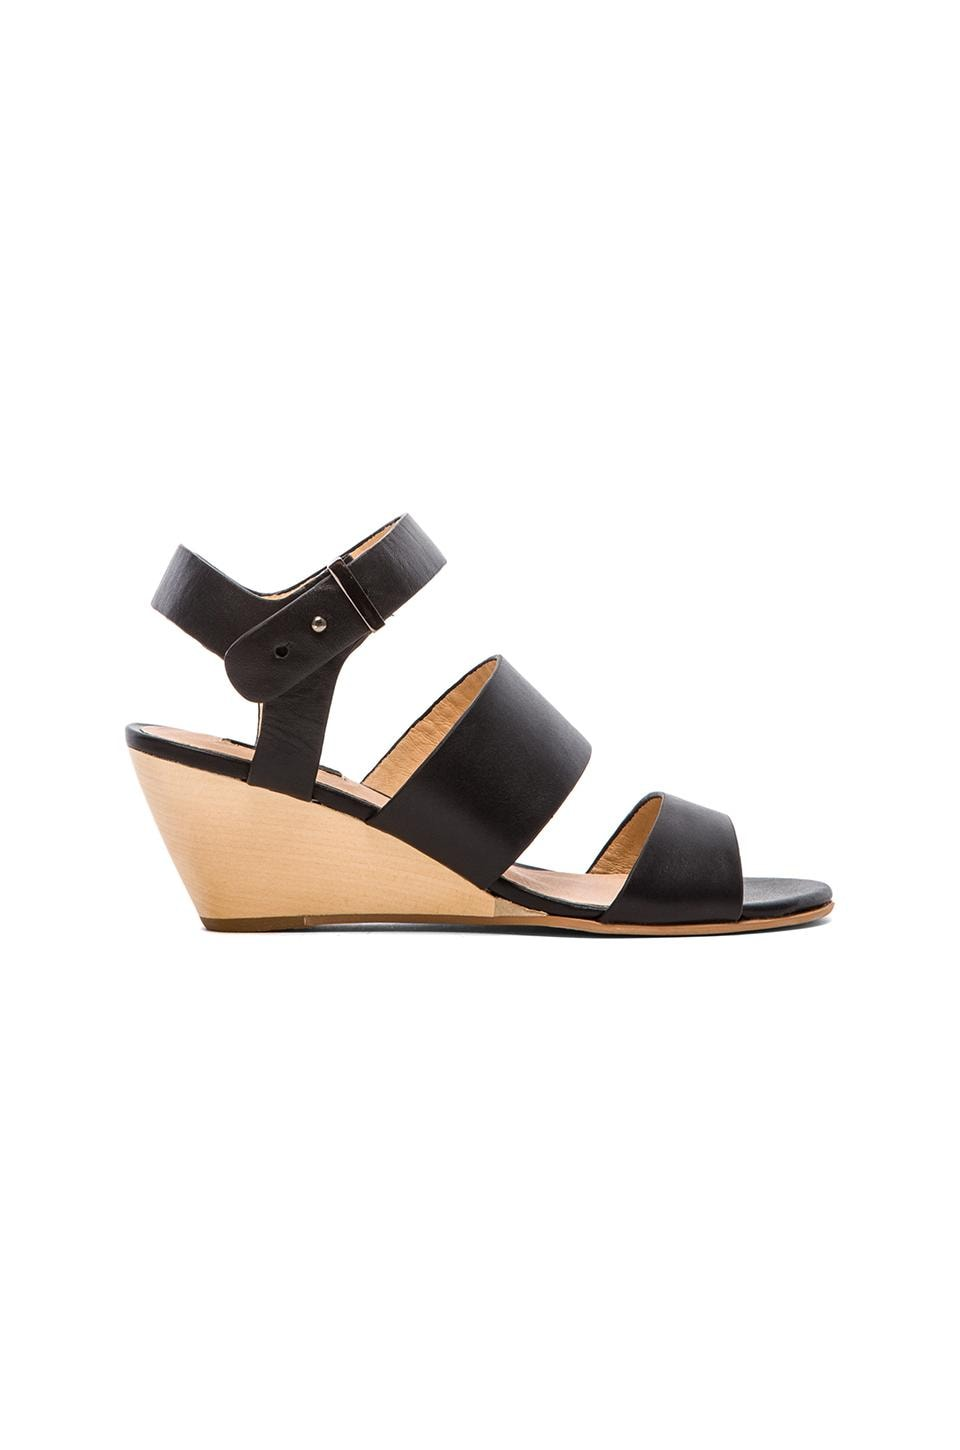 Matiko Lisbeth Sandal in Black